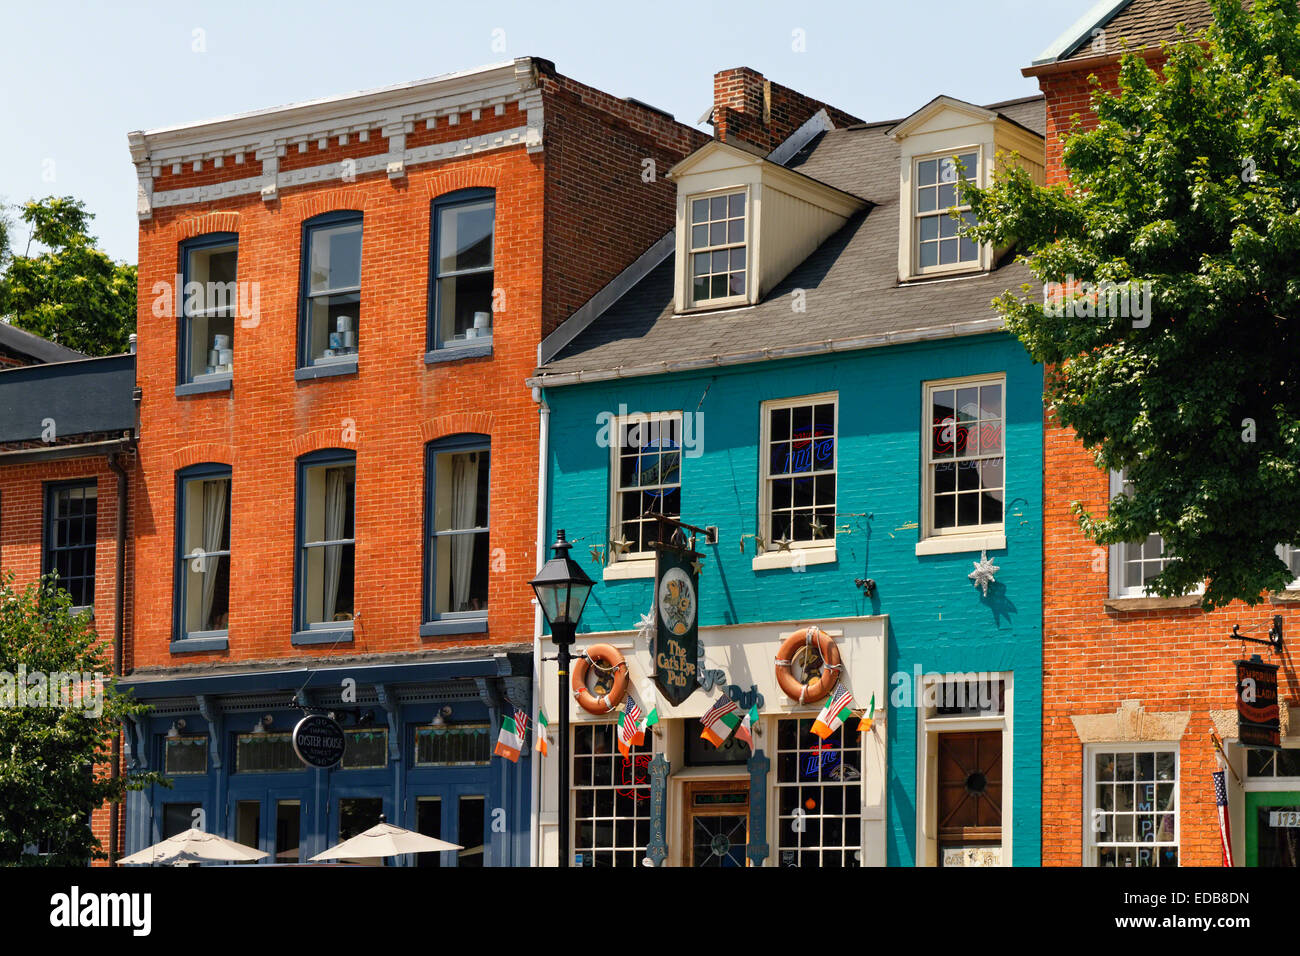 Colorful Houses and Pubs at Fell's Point, Baltimore, Maryland - Stock Image